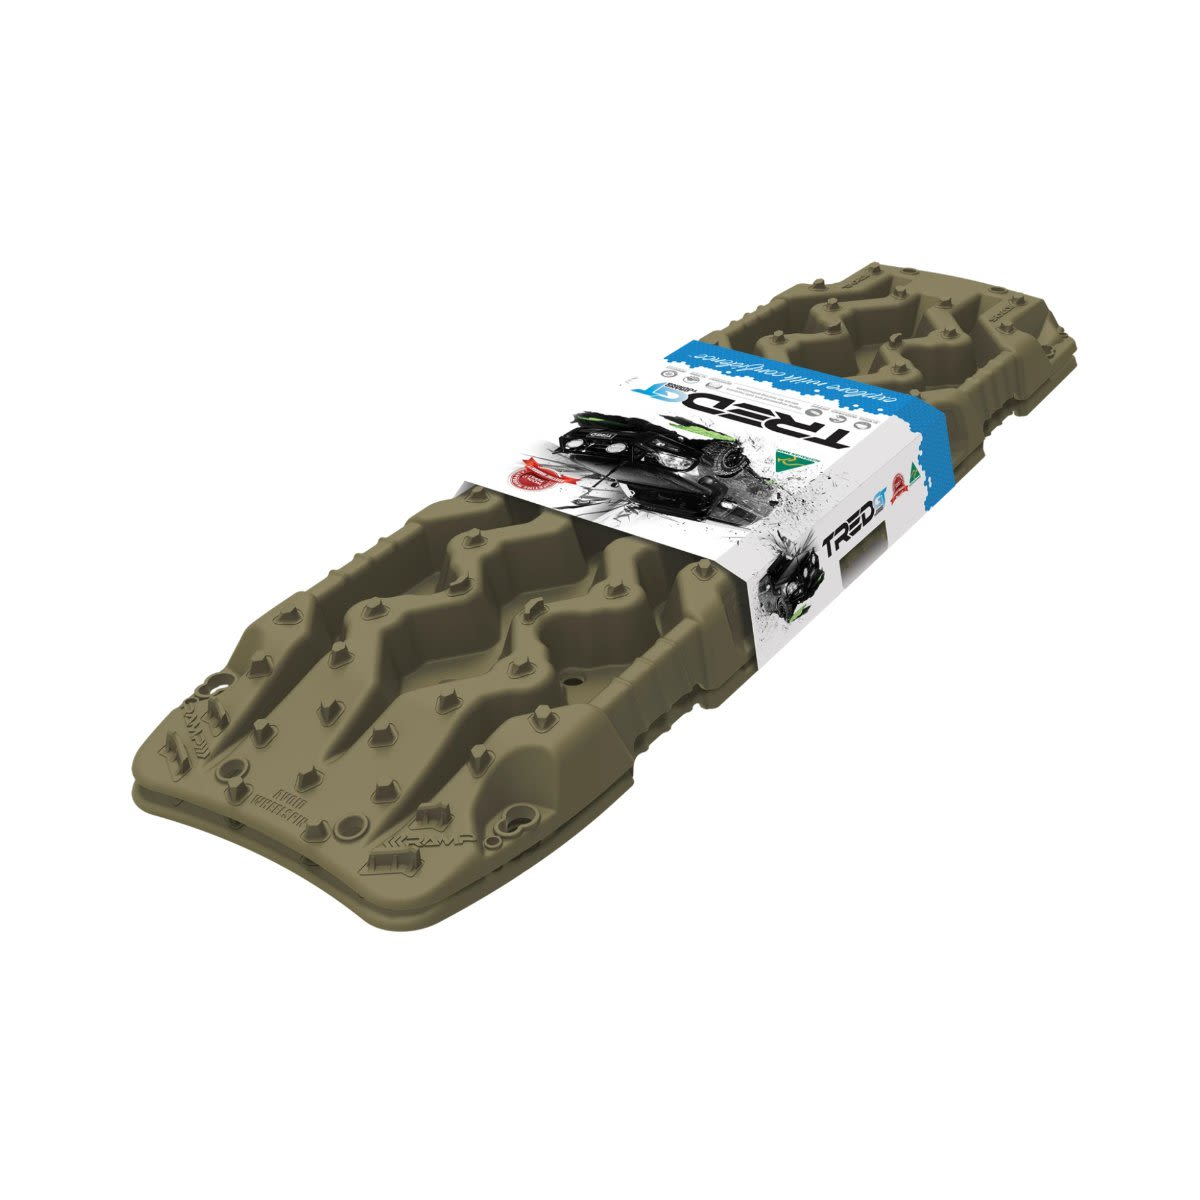 TRED GT RECOVERY DEVICE MILITARY GREEN